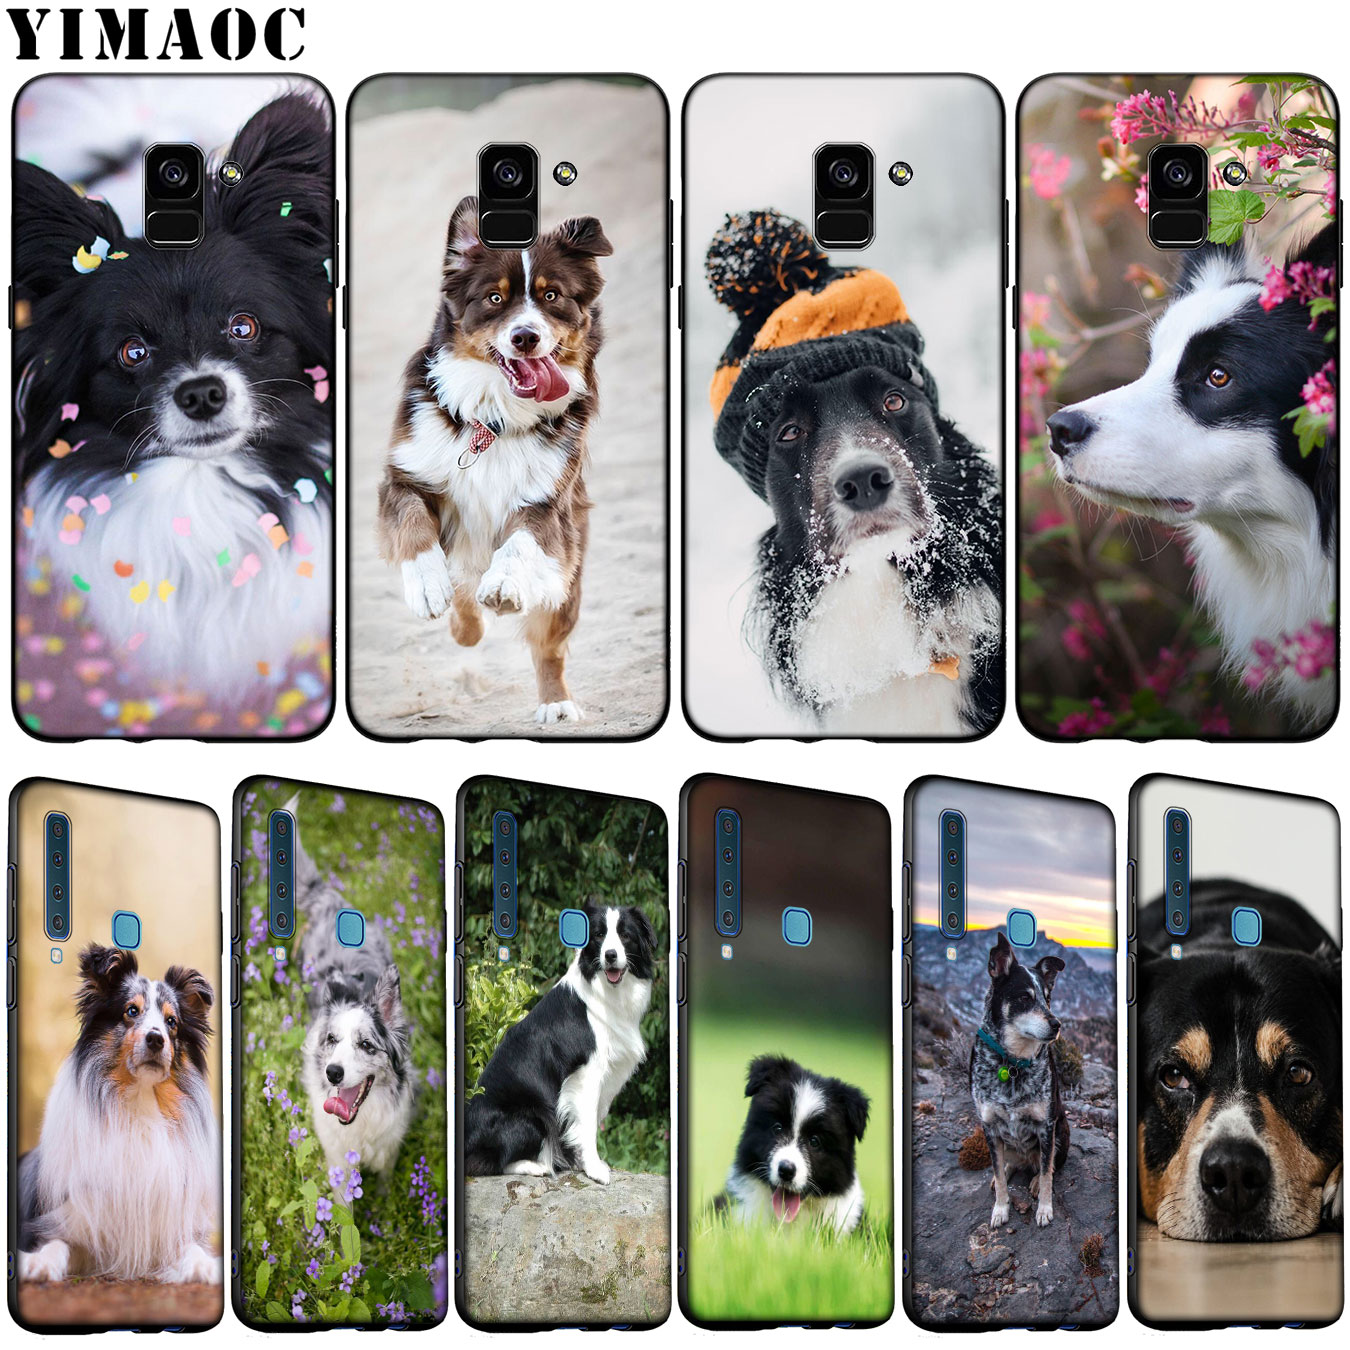 YIMAOC Border Collie <font><b>Dog</b></font> Soft Silicone <font><b>Phone</b></font> <font><b>Case</b></font> for <font><b>Samsung</b></font> <font><b>Galaxy</b></font> A6 A9 A8 A7 2018 <font><b>A3</b></font> A5 2016 <font><b>2017</b></font> Note 9 8 10 Plus Lite image